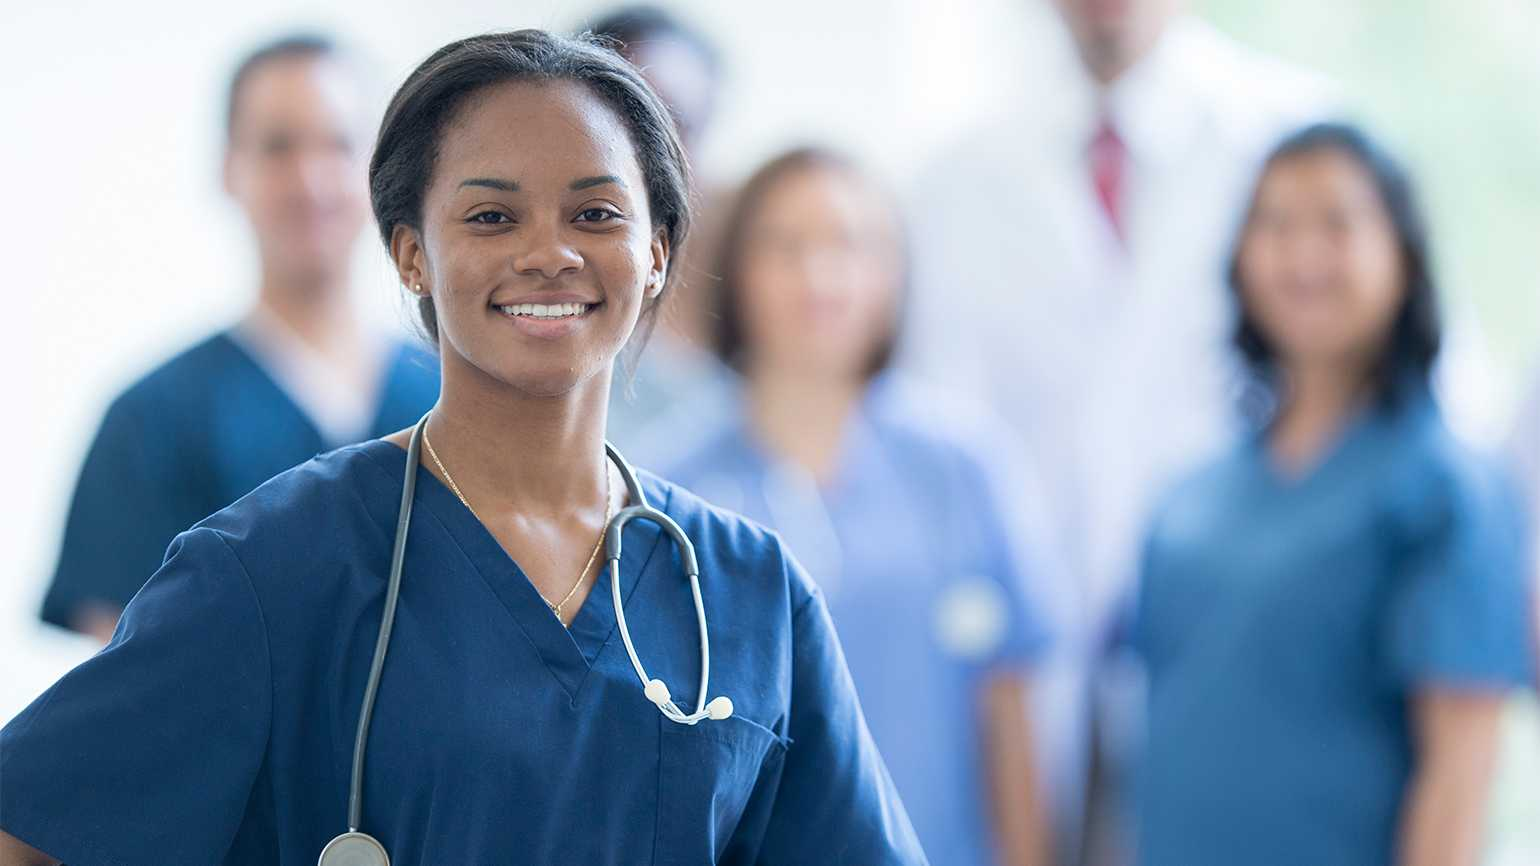 A nurse stands, smiling, as her colleagues look on